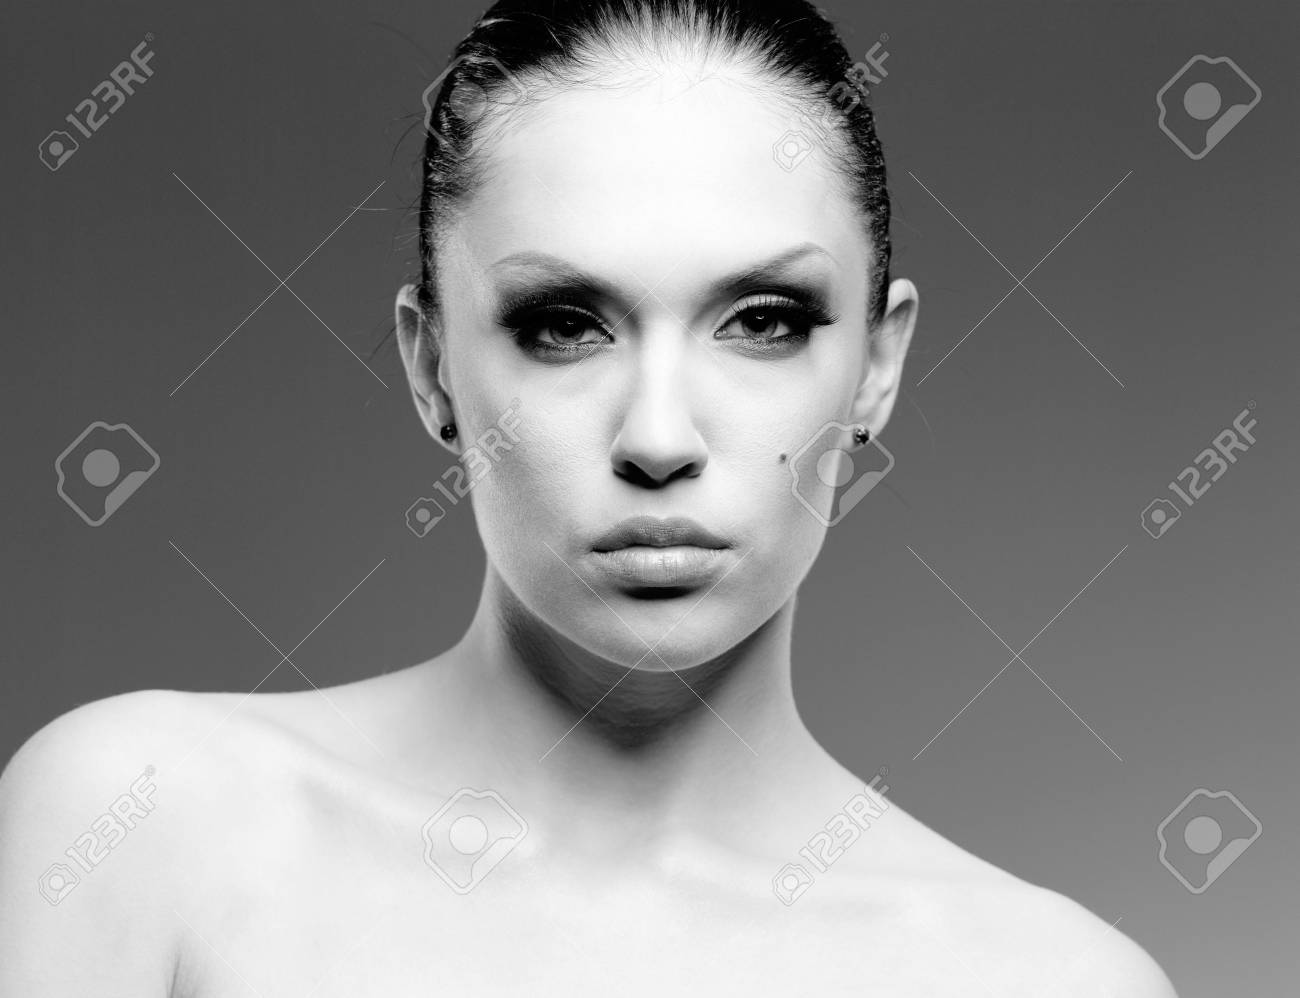 Makeup and glamour. Young attractive woman studio portrait. Stock Photo - 6561780